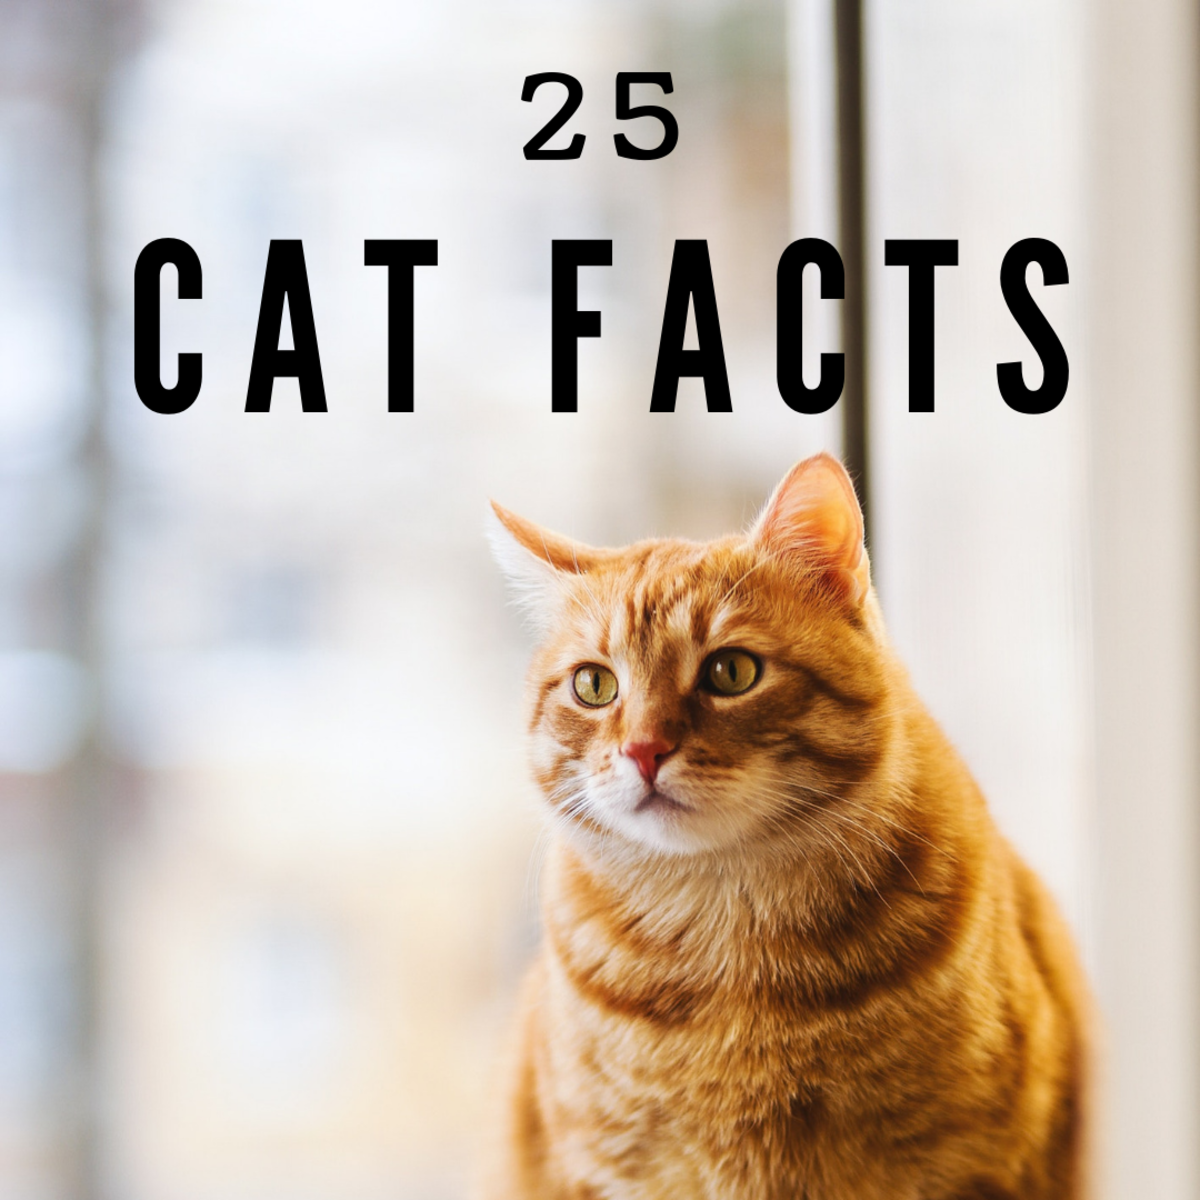 23 Fascinating Facts About Cats